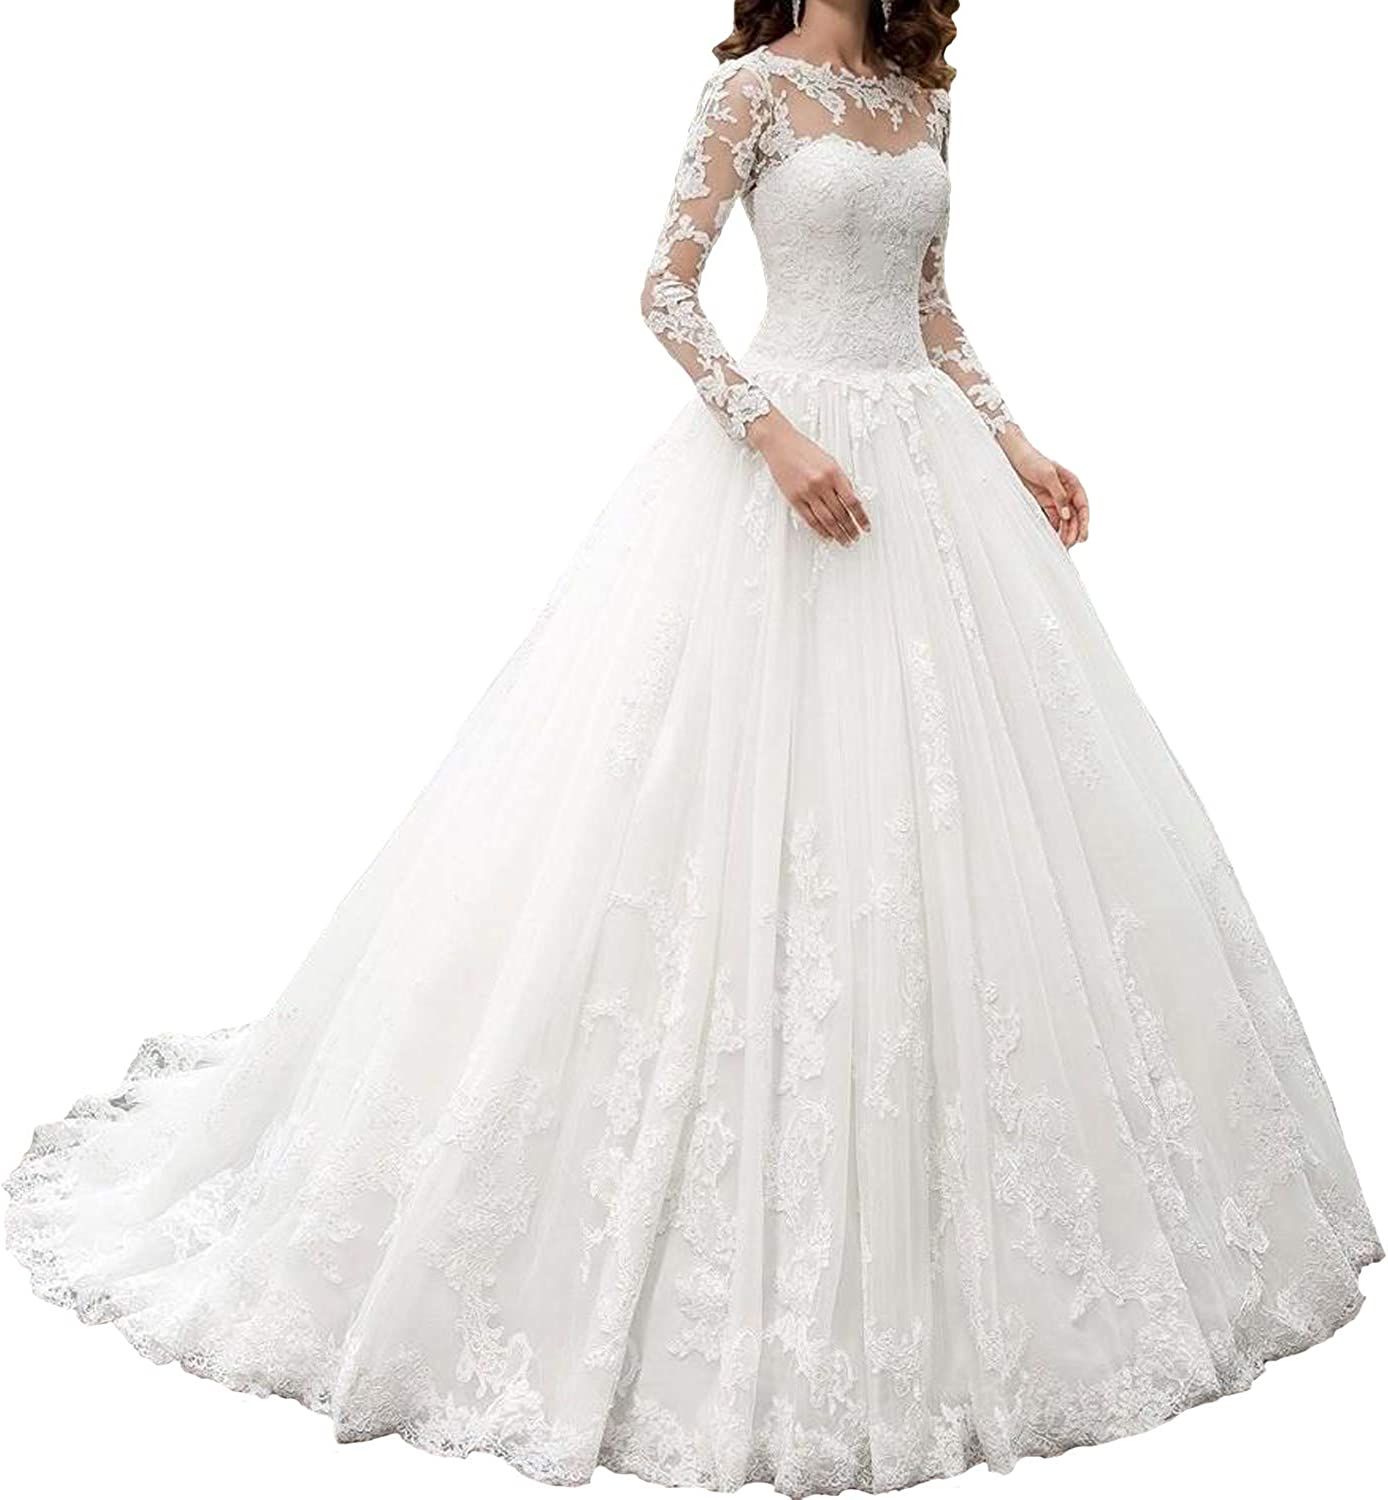 Owman New Women S Long Sleeves Scoop Lace Ball Gown Wedding Dress Bridal Gowns At Amazon Women S Clothing Store